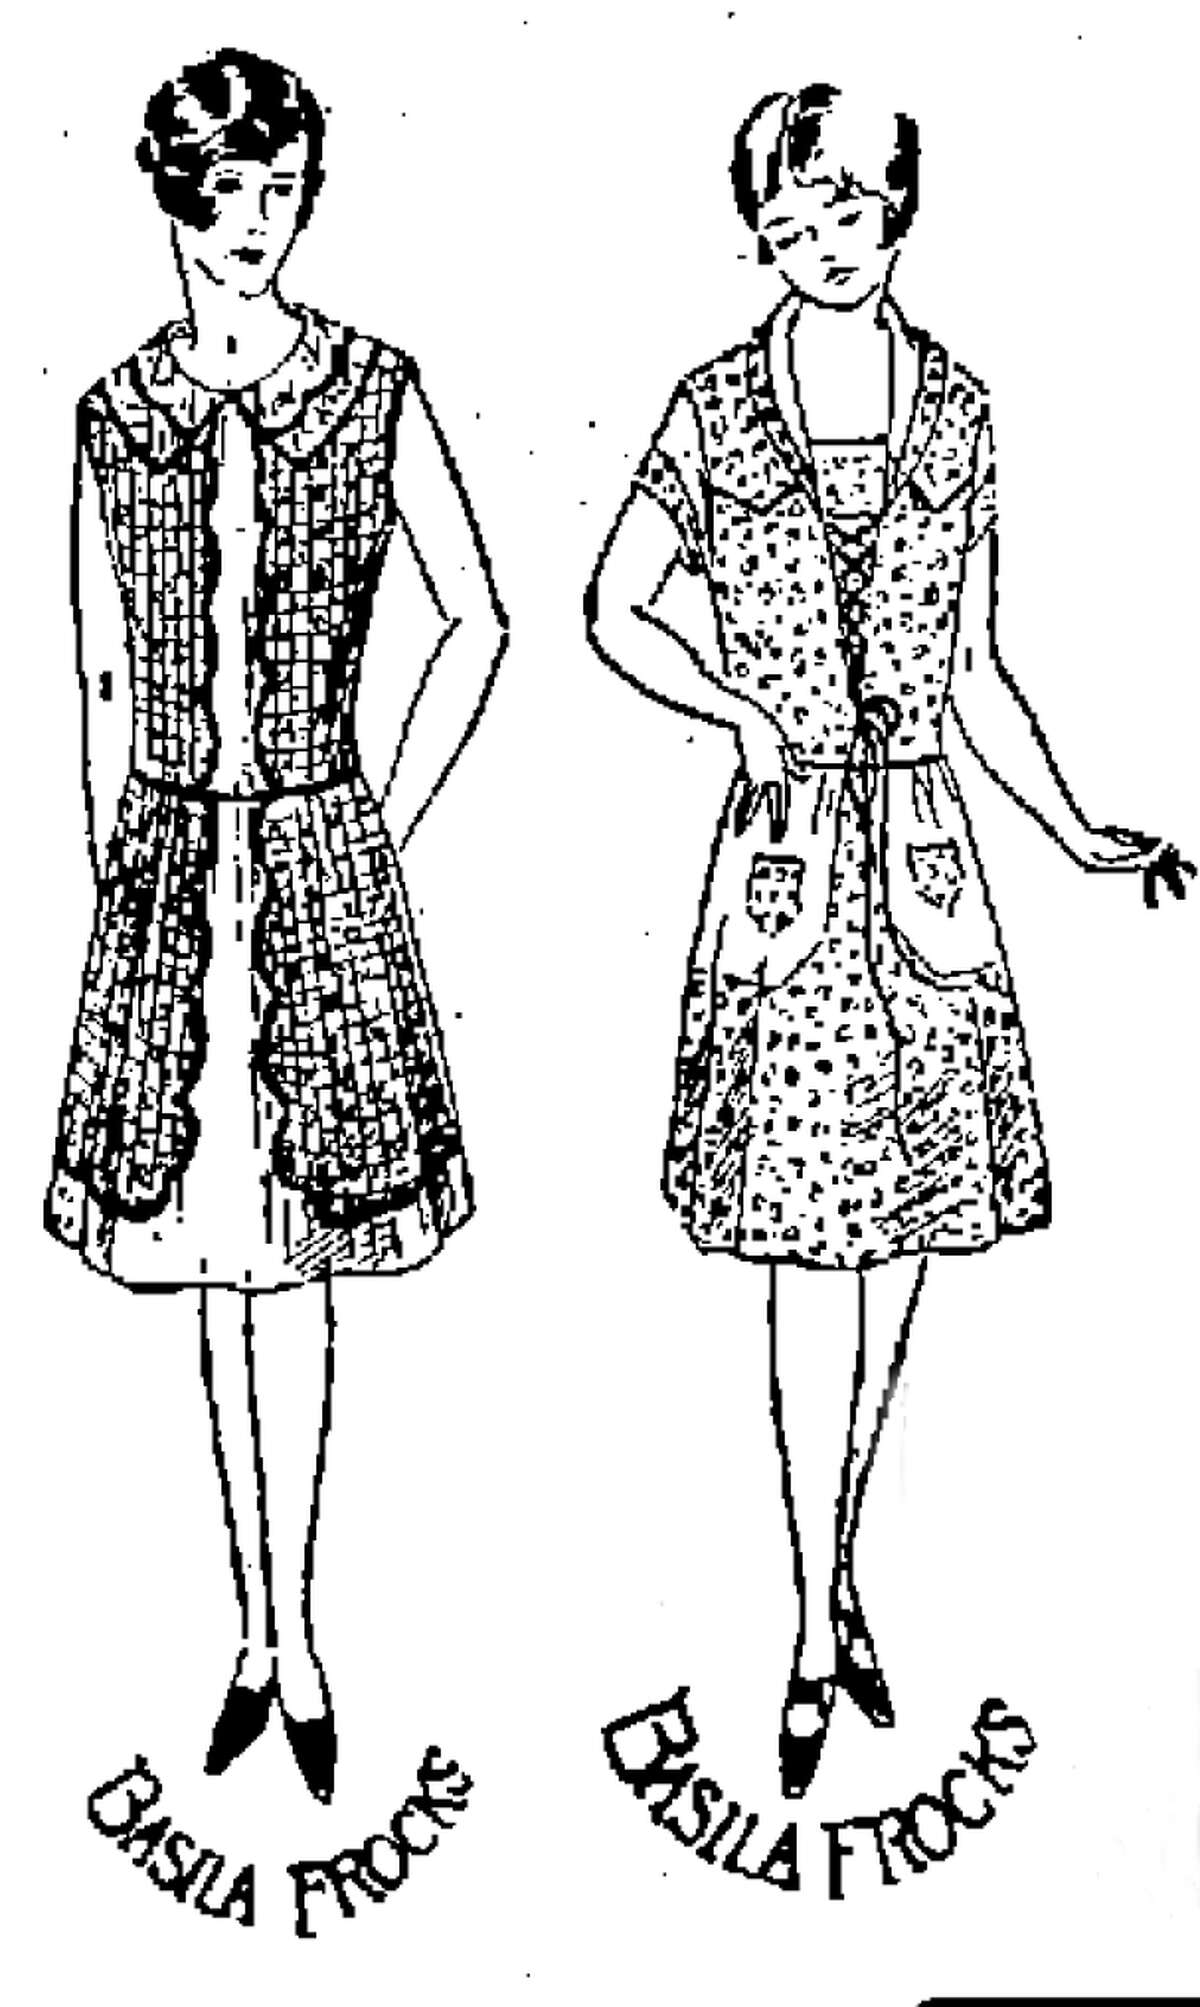 A 1928 ad for Basila Frocks from the San Antonio Express.